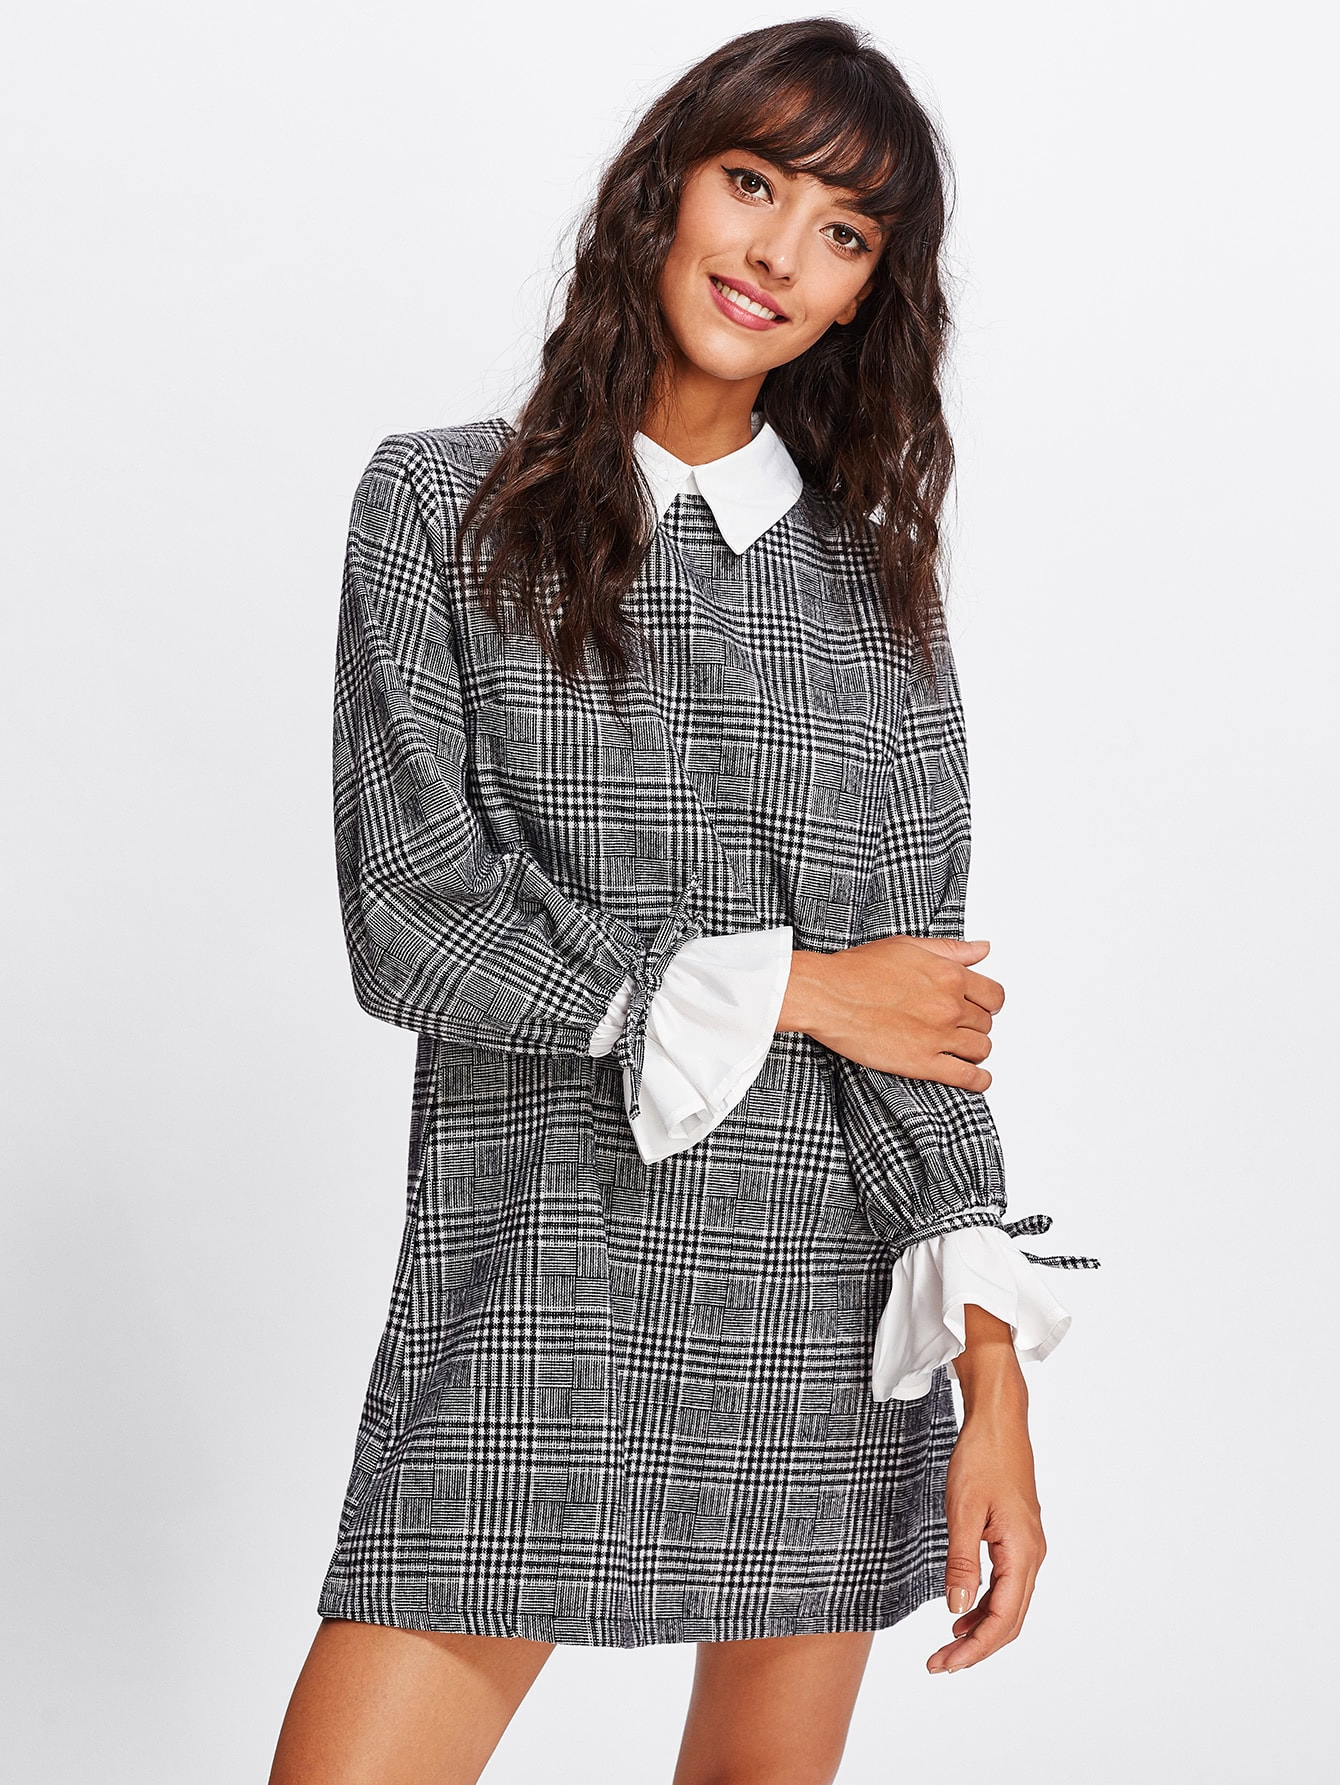 Contrast Tied Bell Cuff And Collar Plaid Dress p flach simply logical – intelligent reasoning by example mac d3